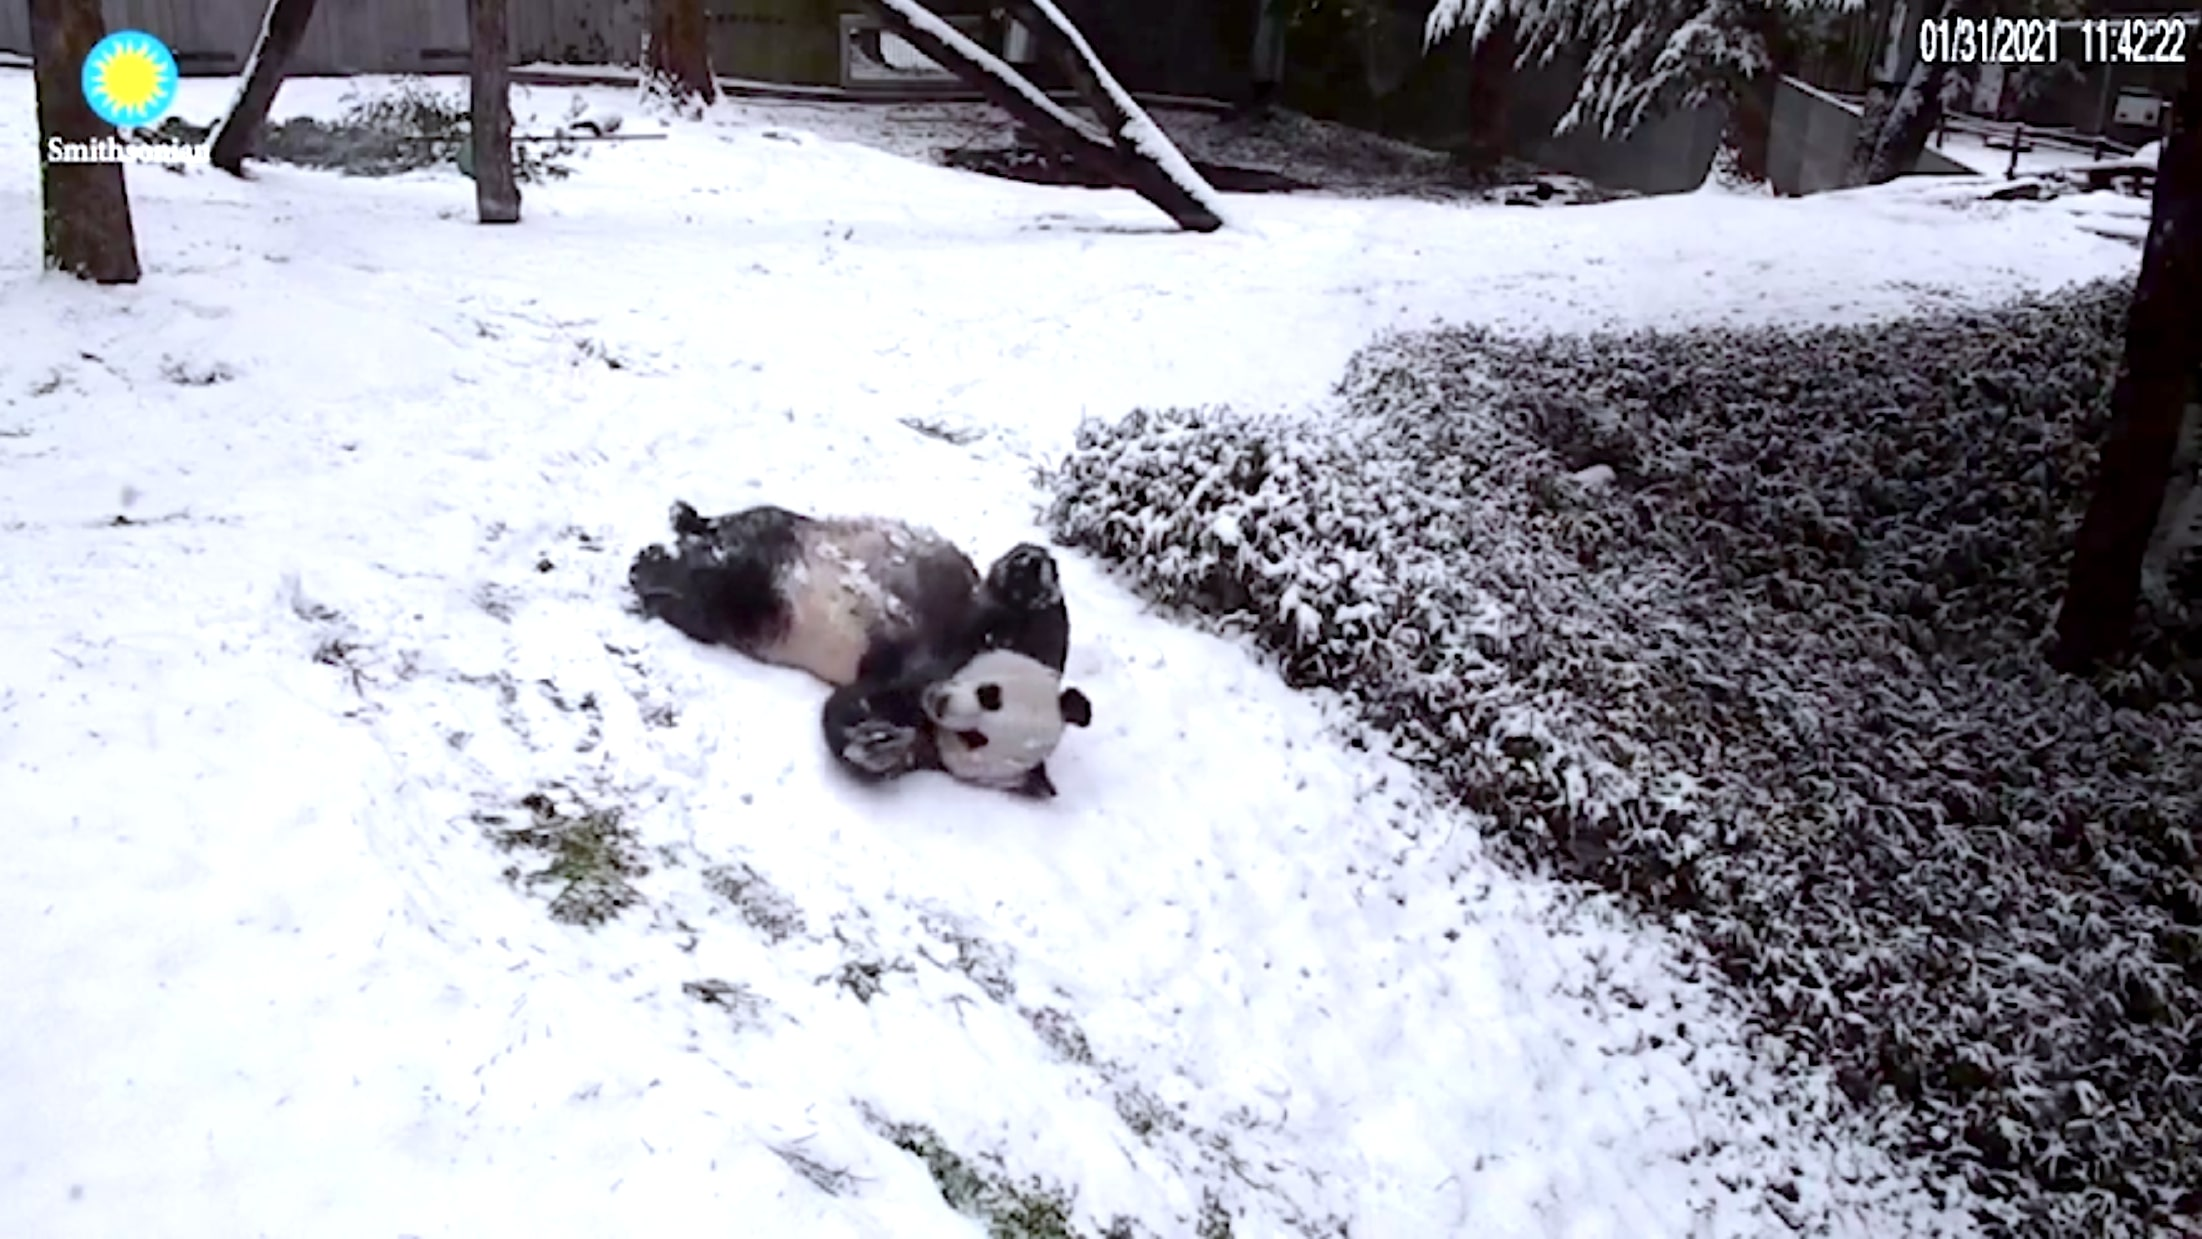 Smithsonian's National Zoo Giant Pandas And Other Animals Enjoy The Snow